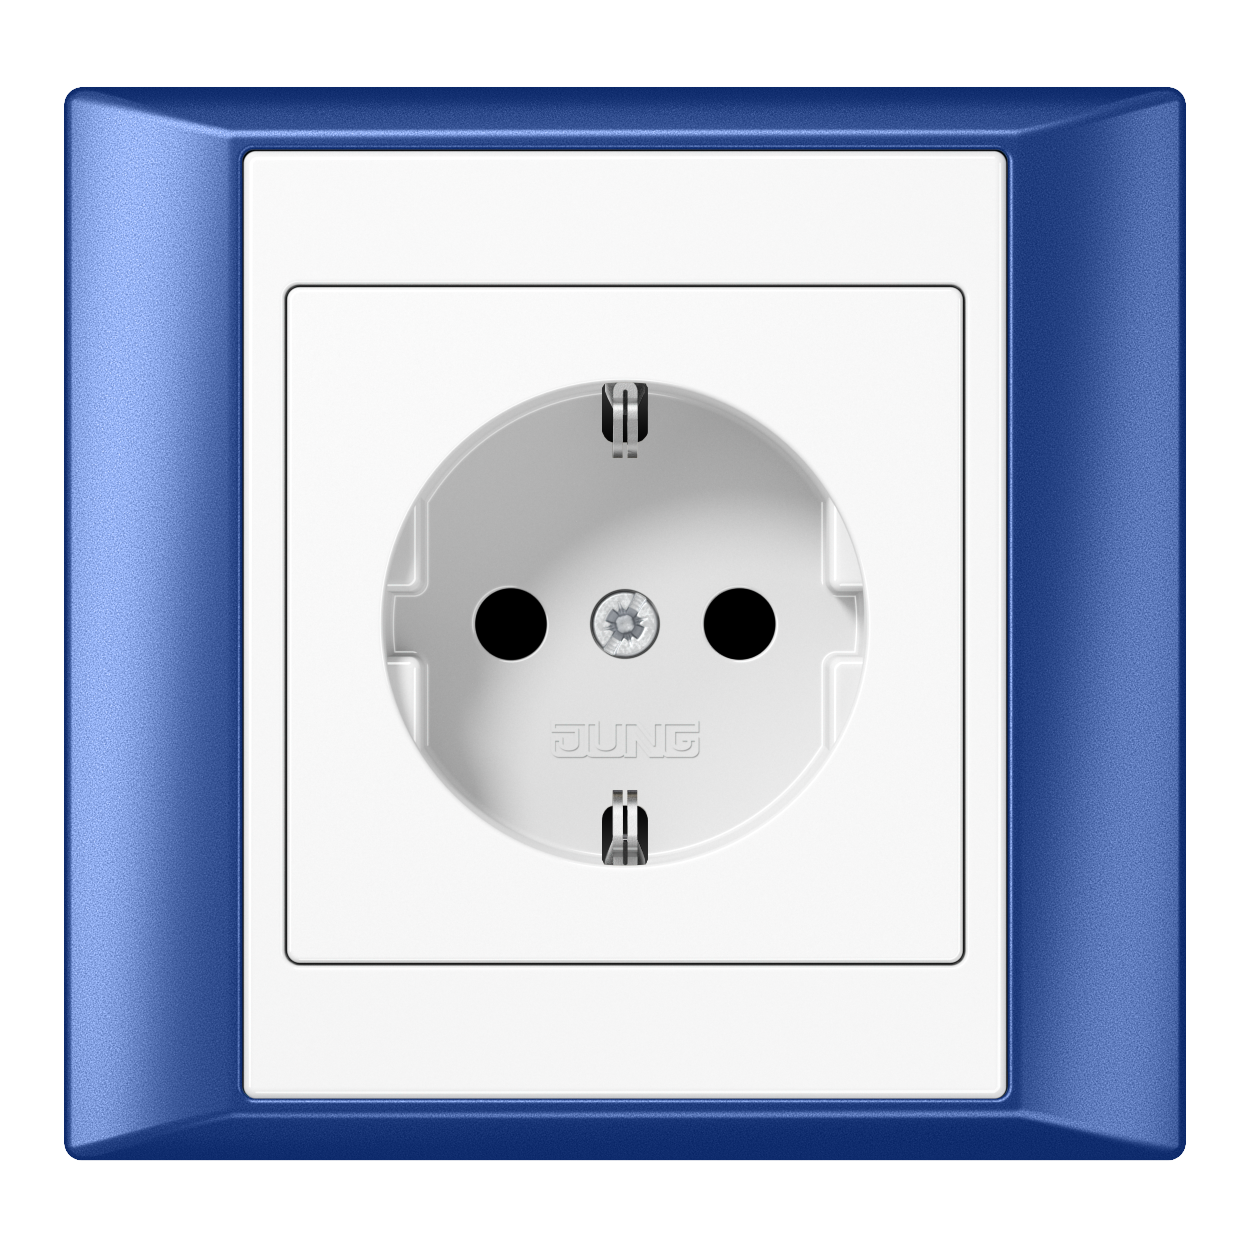 JUNG_Aplus_blue-white_socket